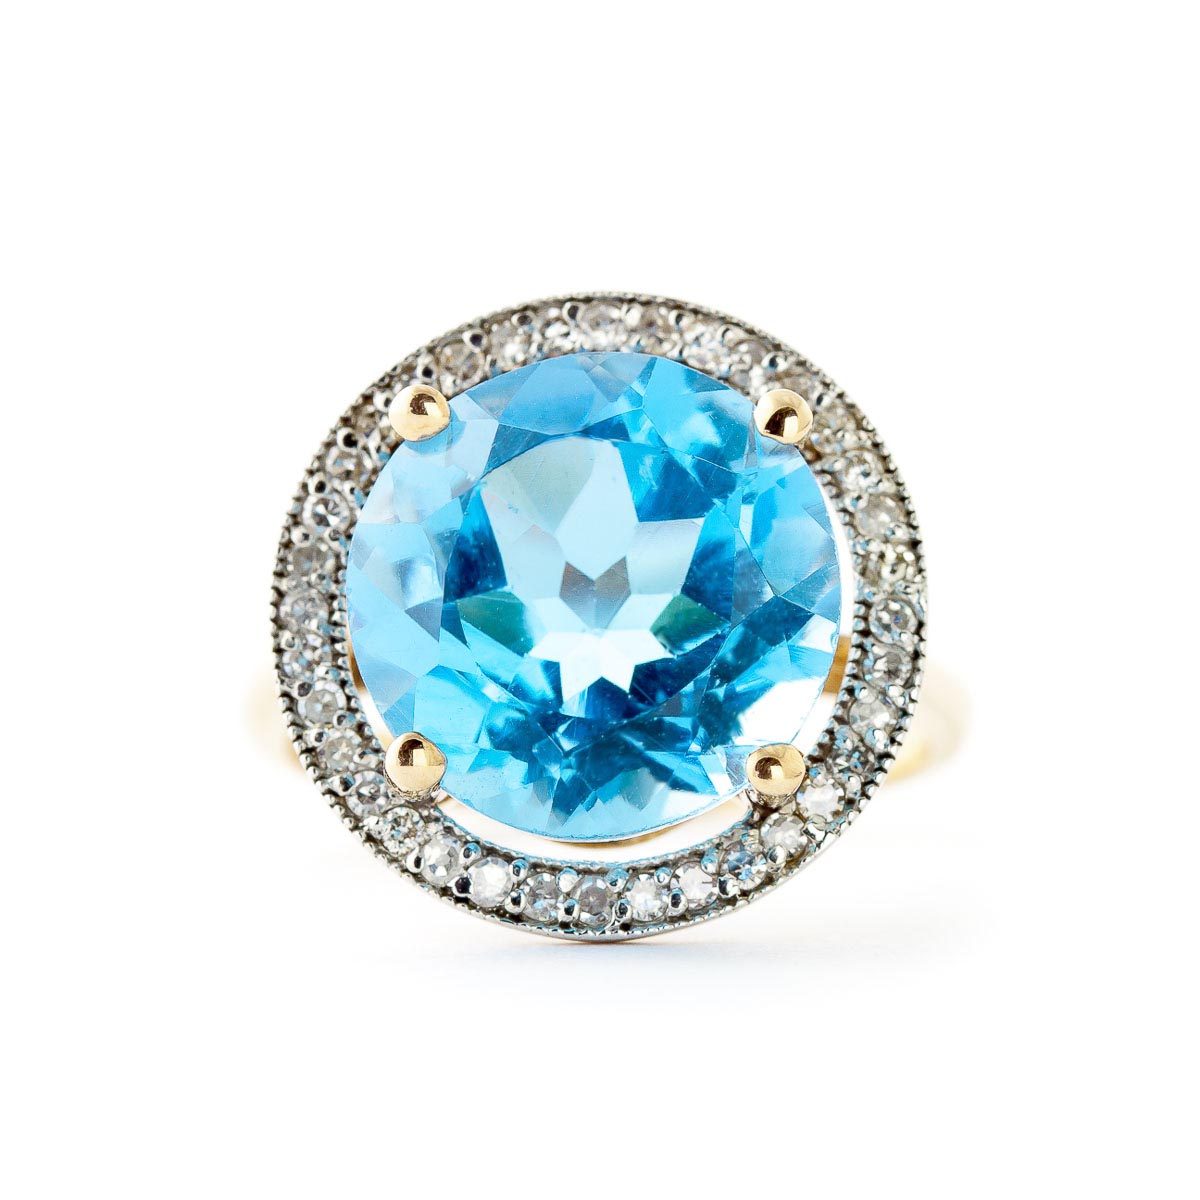 Blue Topaz Halo Ring 8 ctw in 9ct Gold